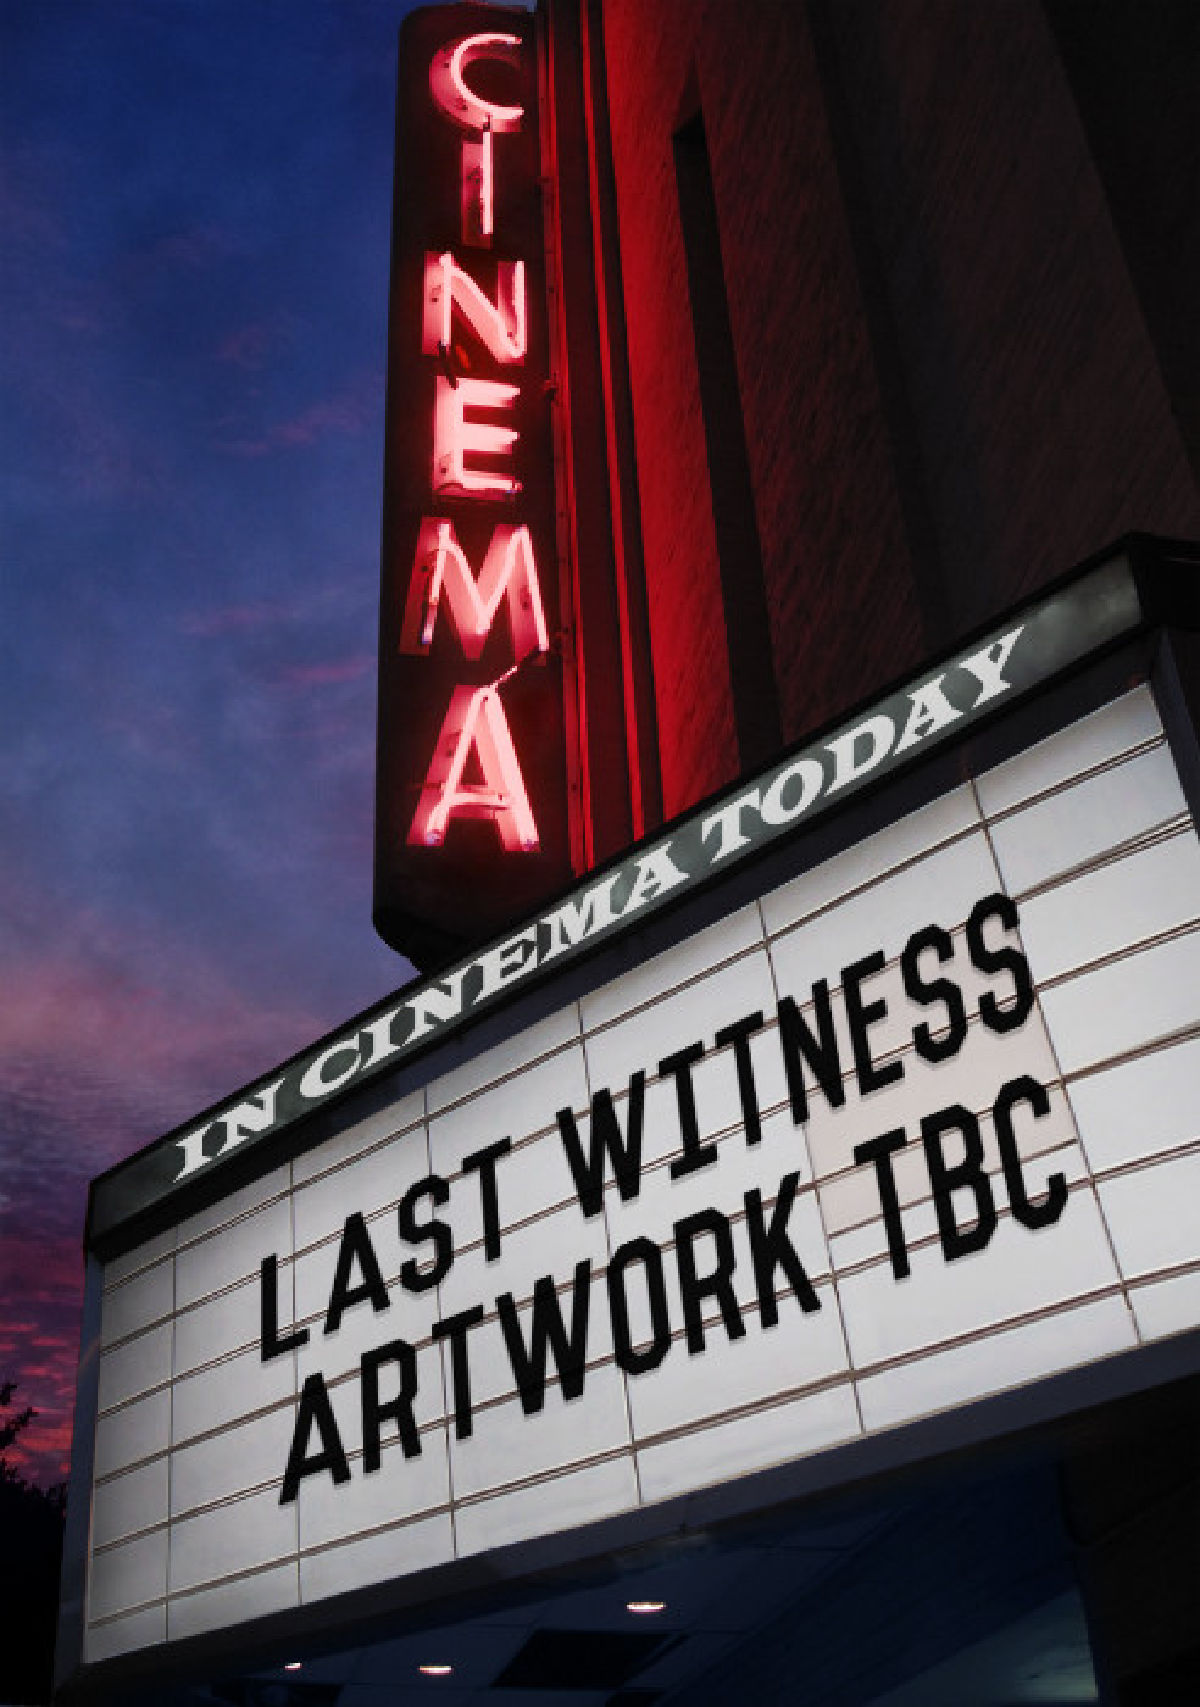 'Last Witness' movie poster